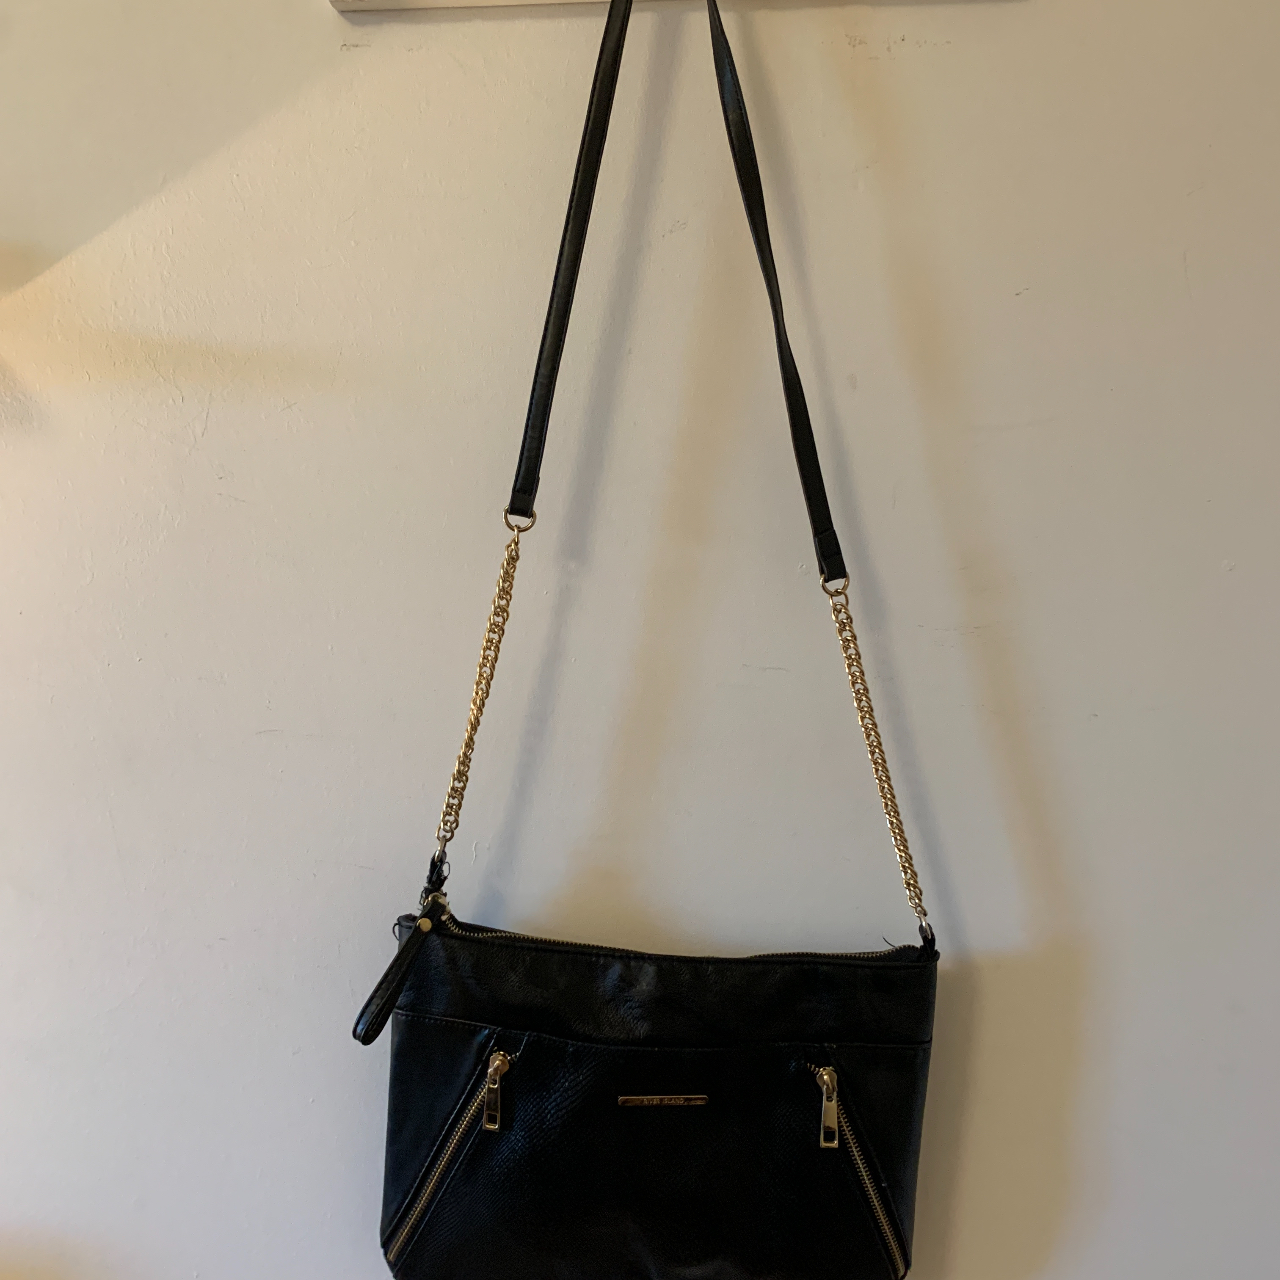 Product Image 1 - River Island purse - great